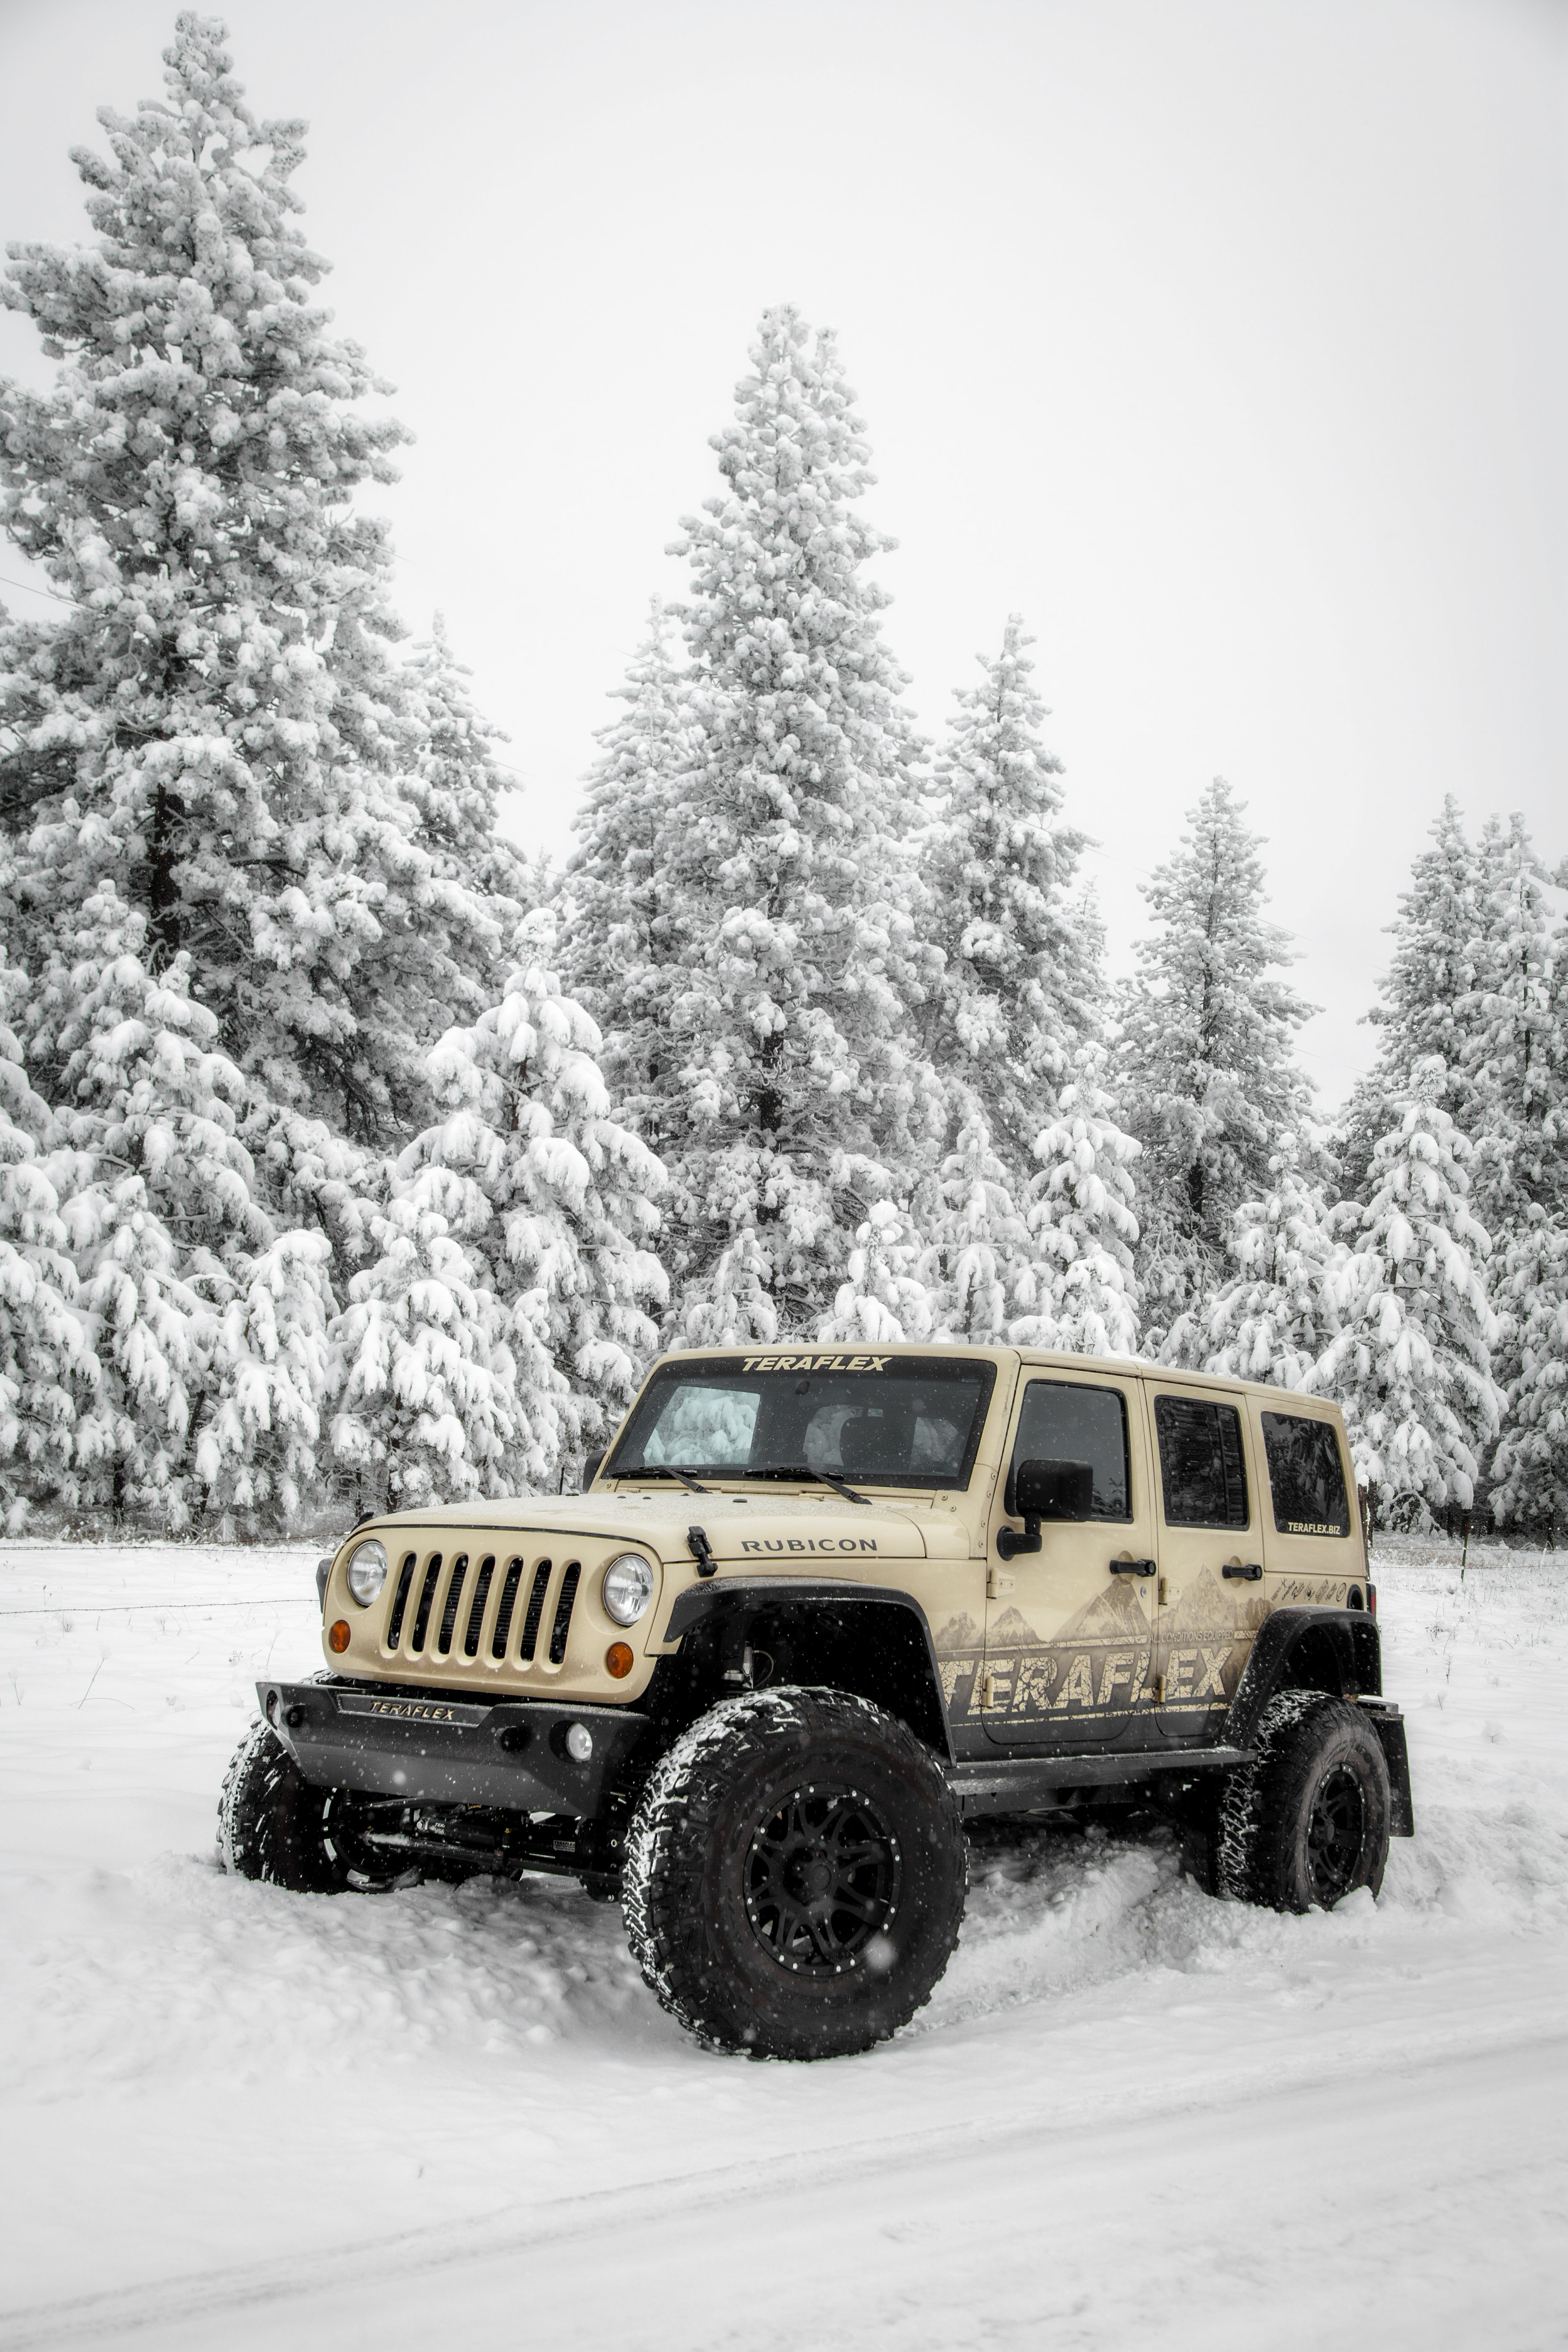 Teraflex jeep build nomad defender in the snow land rover jeep suzuki lj sj of road cool ice love best car fun winter stanpatzitw